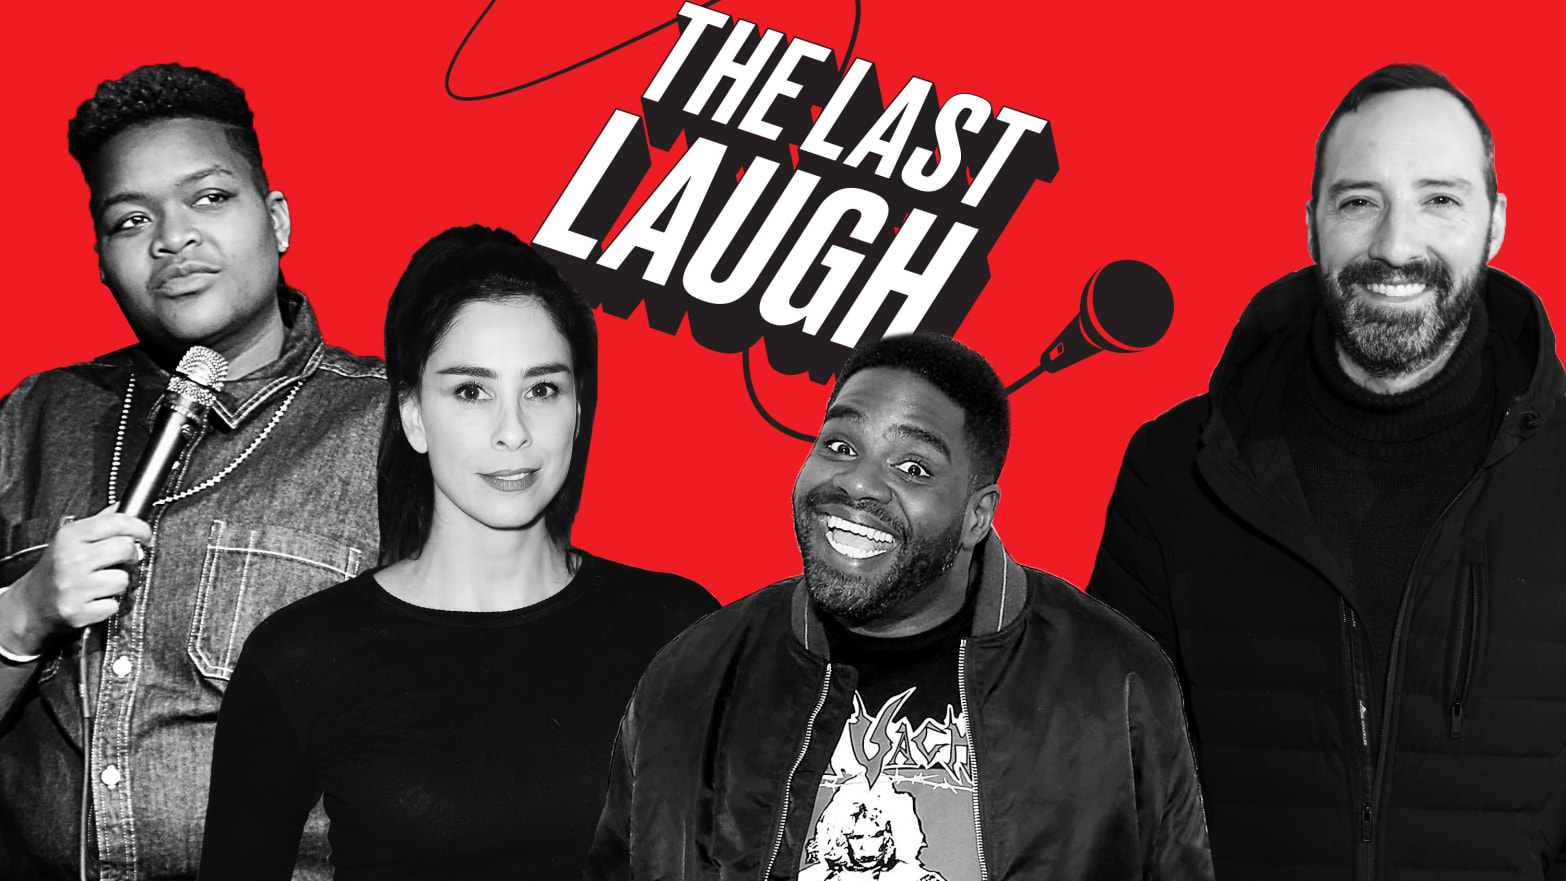 'The Last Laugh' Podcast: Our Brand-New Comedy Interview Show